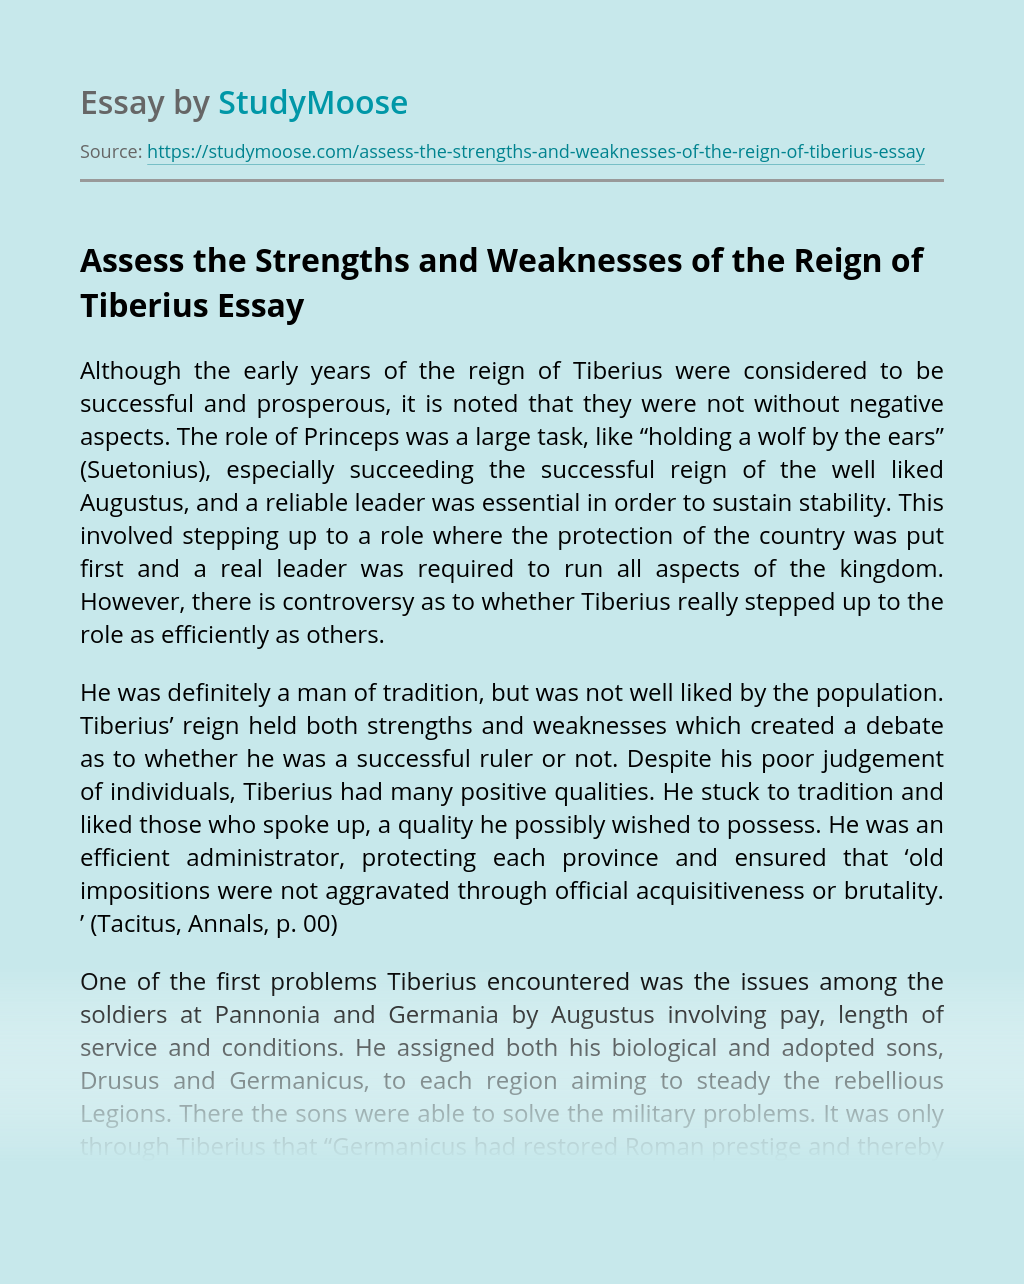 Assess the Strengths and Weaknesses of the Reign of Tiberius